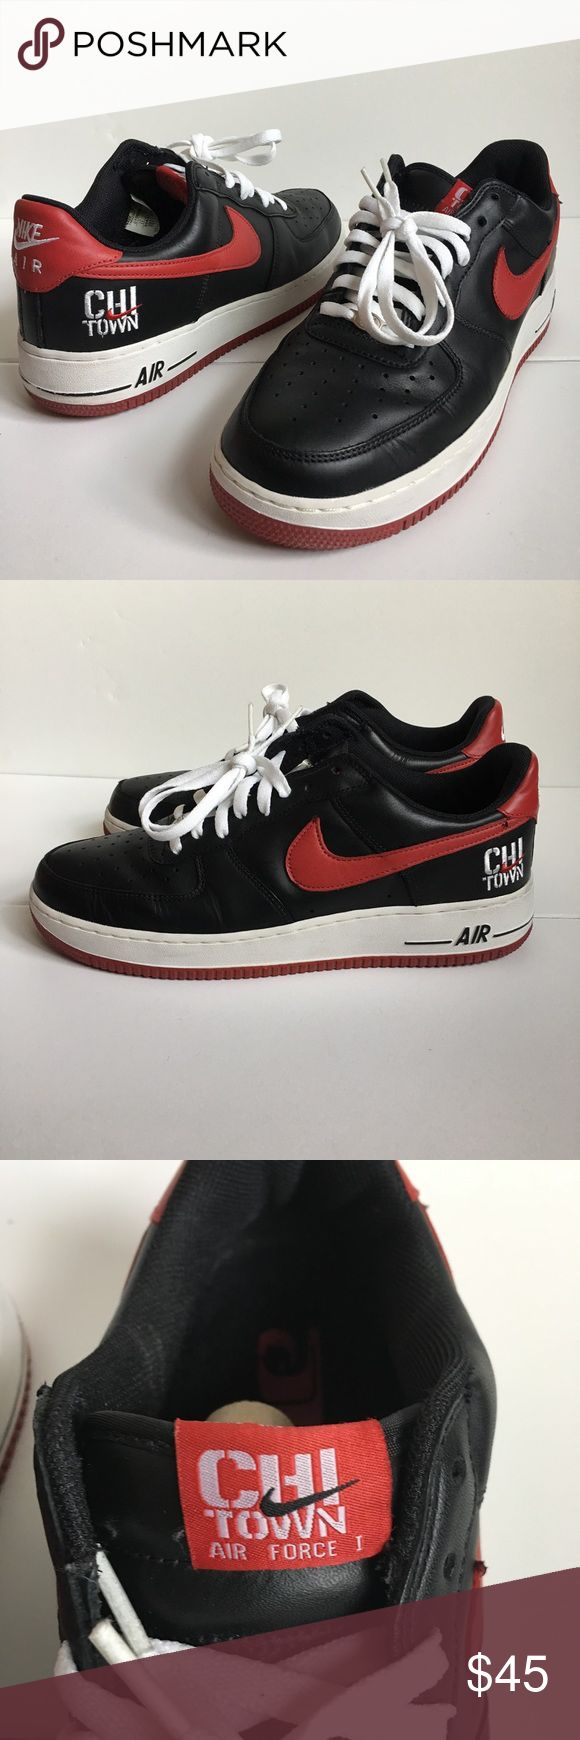 "Nike Air Force 1 Low ""Chi Town"" men's size 11 Nike Air Force 1 Low ""Chi Town"" men's size 11. Great condition. Comes in Original box. Nike Shoes Sneakers"